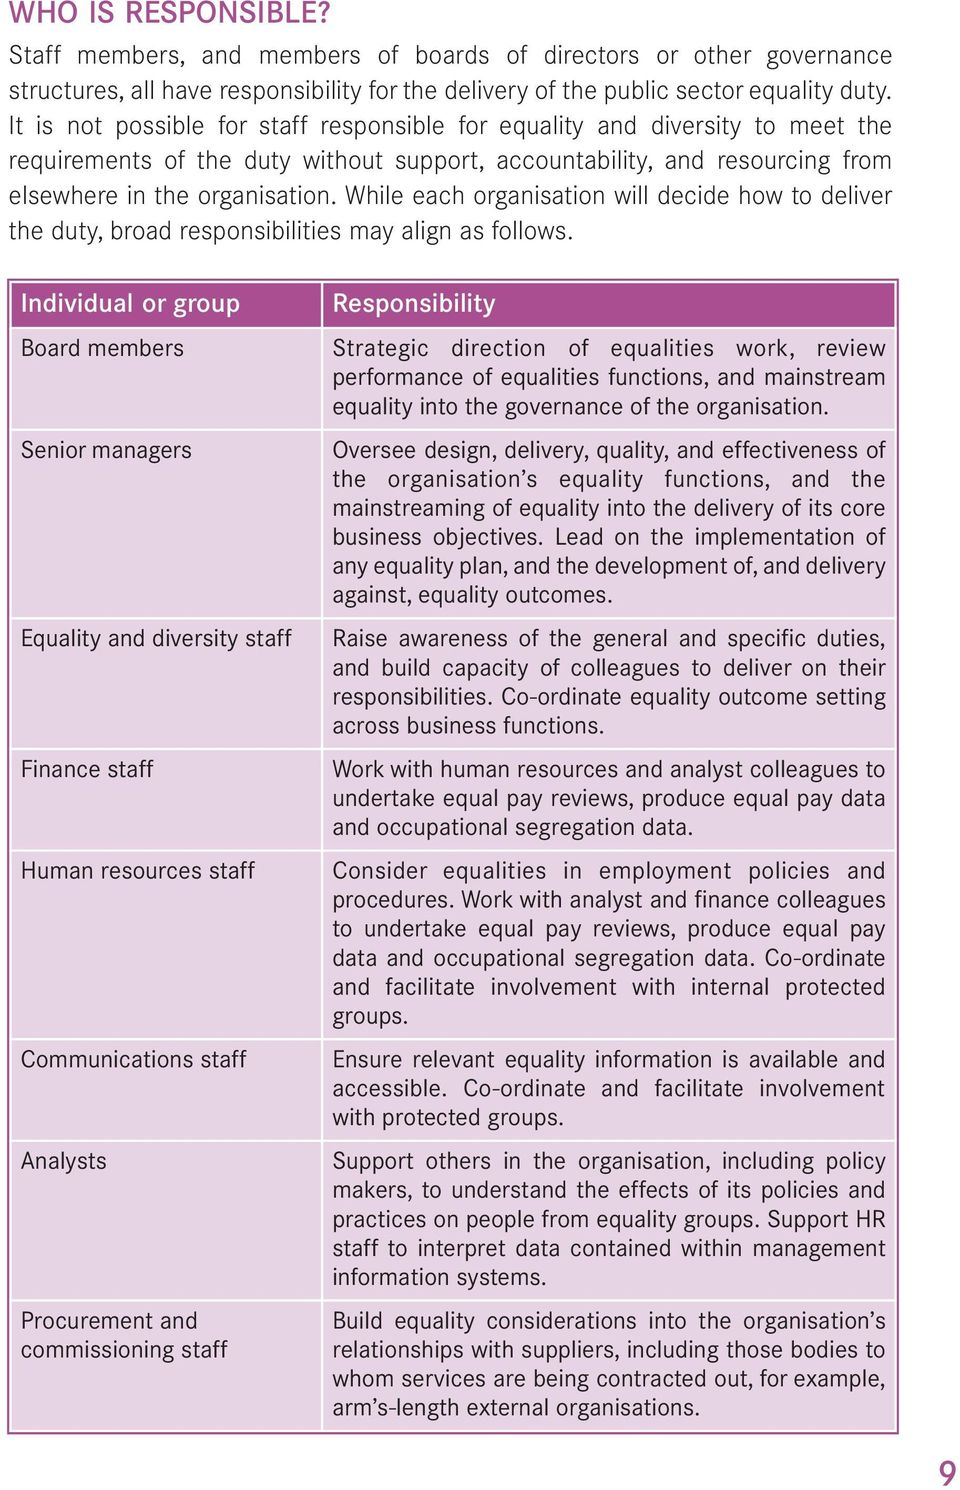 While each organisation will decide how to deliver the duty, broad responsibilities may align as follows.